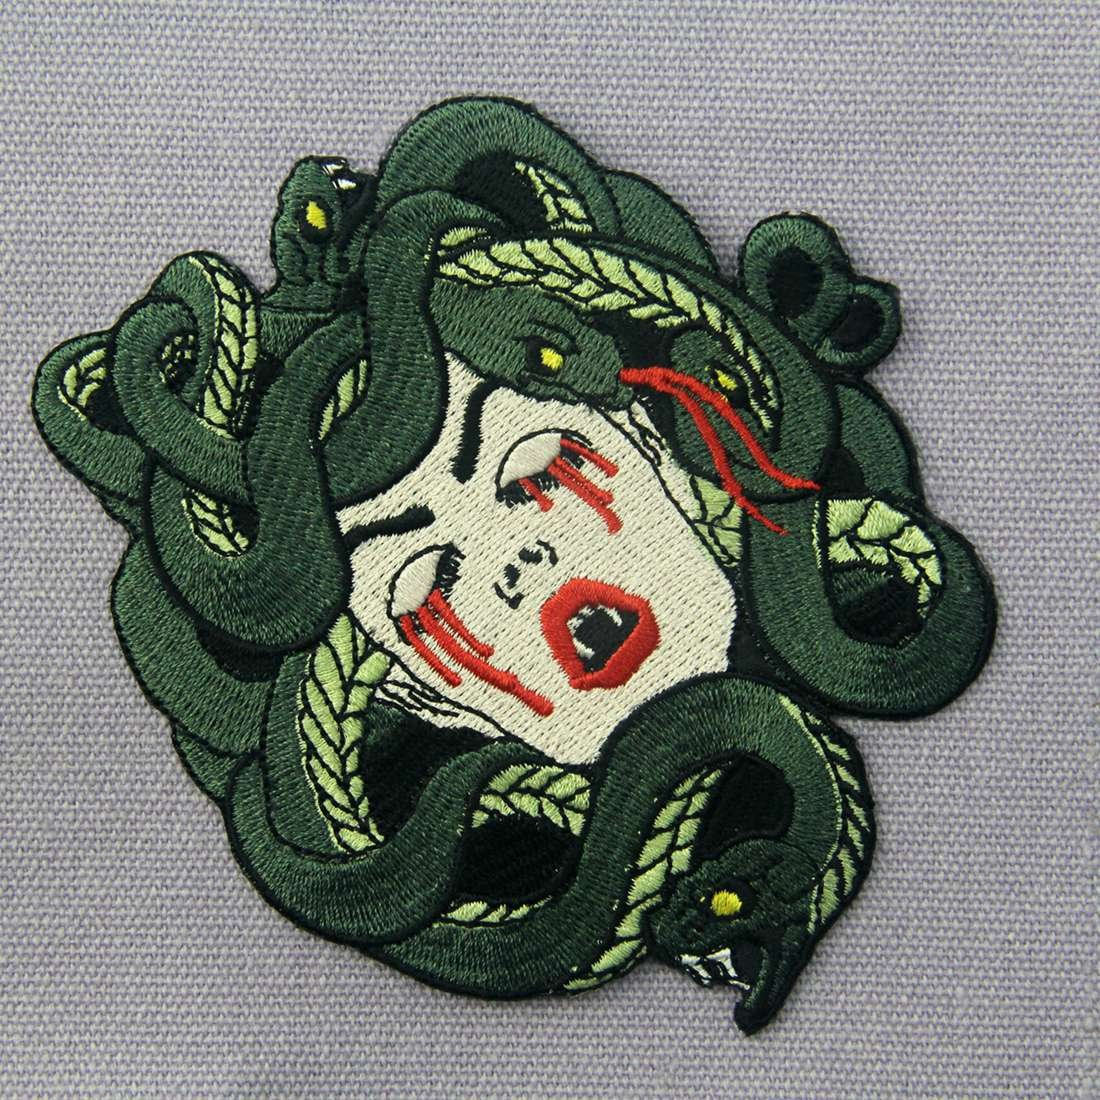 ZEGINs The Bleeding Medusa Embroidered Badge Iron On Sew On Patch